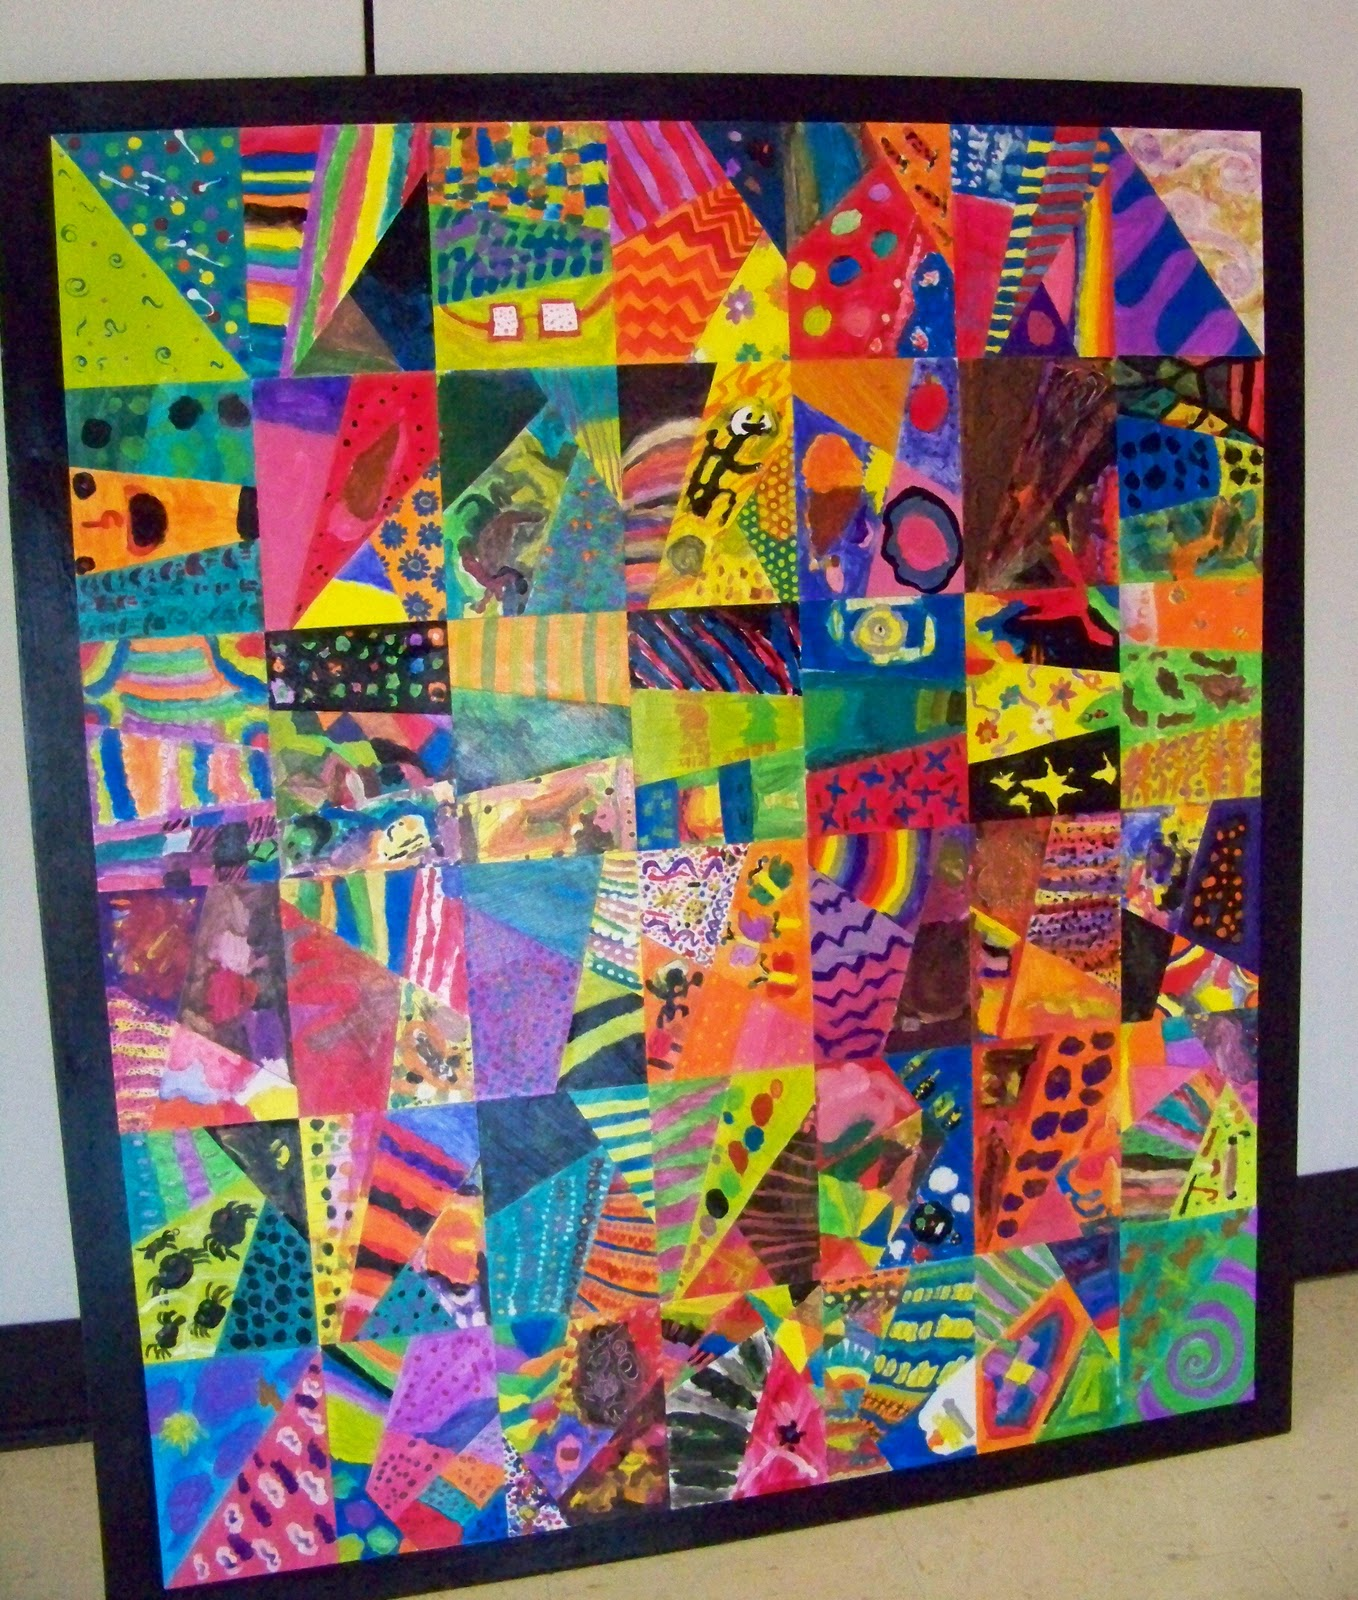 candice ashment art: Abstract Mural - Our Contemporary ... - photo#24